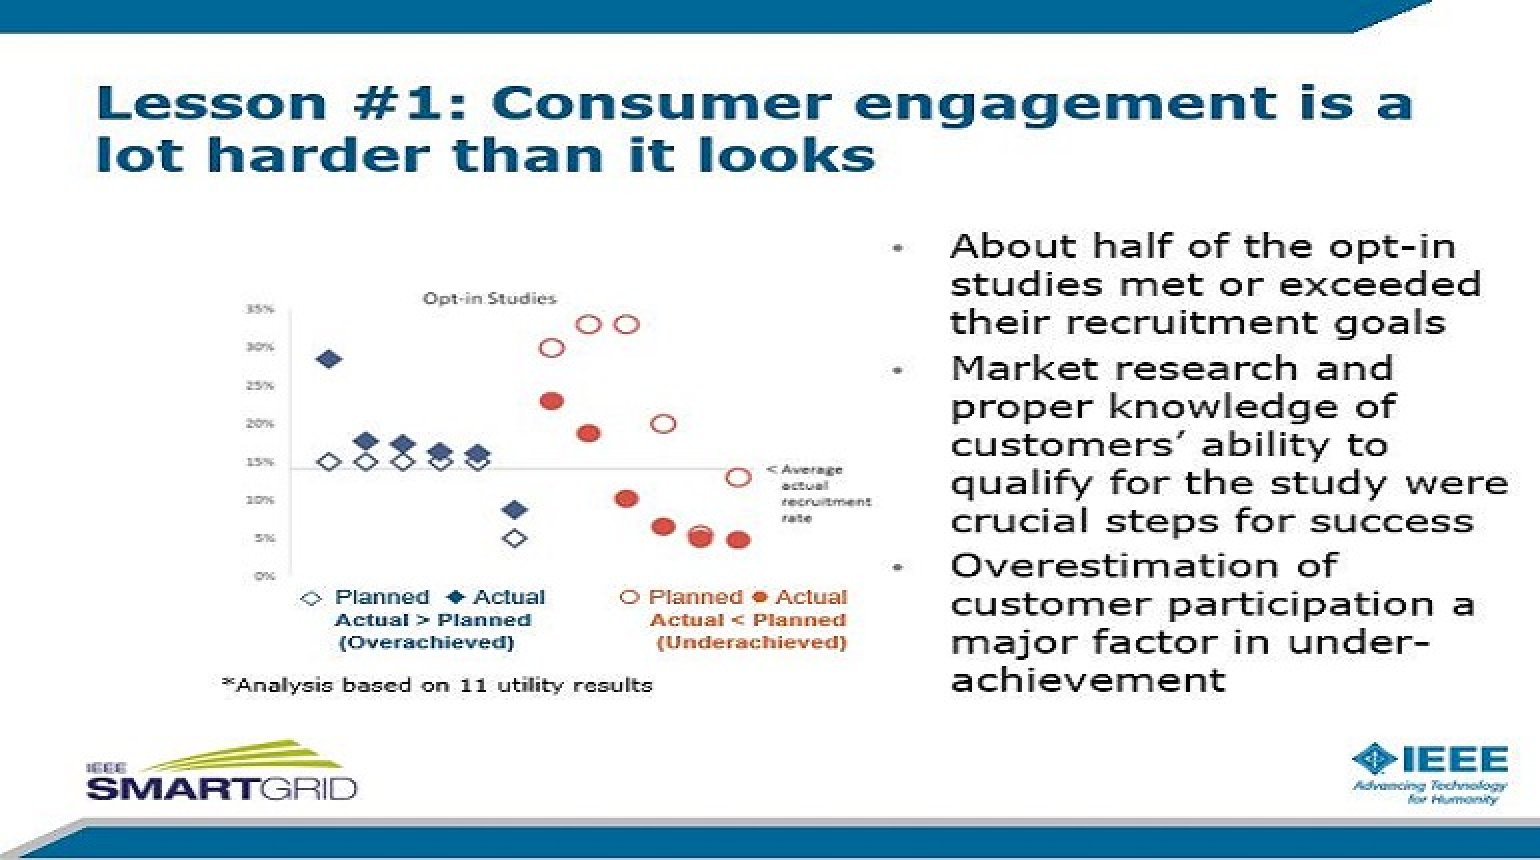 Impacts of SGIG Consumer Behavior Studies of Time-Based Rates on Customer Acceptance, Retention and Response with Peter Cappers